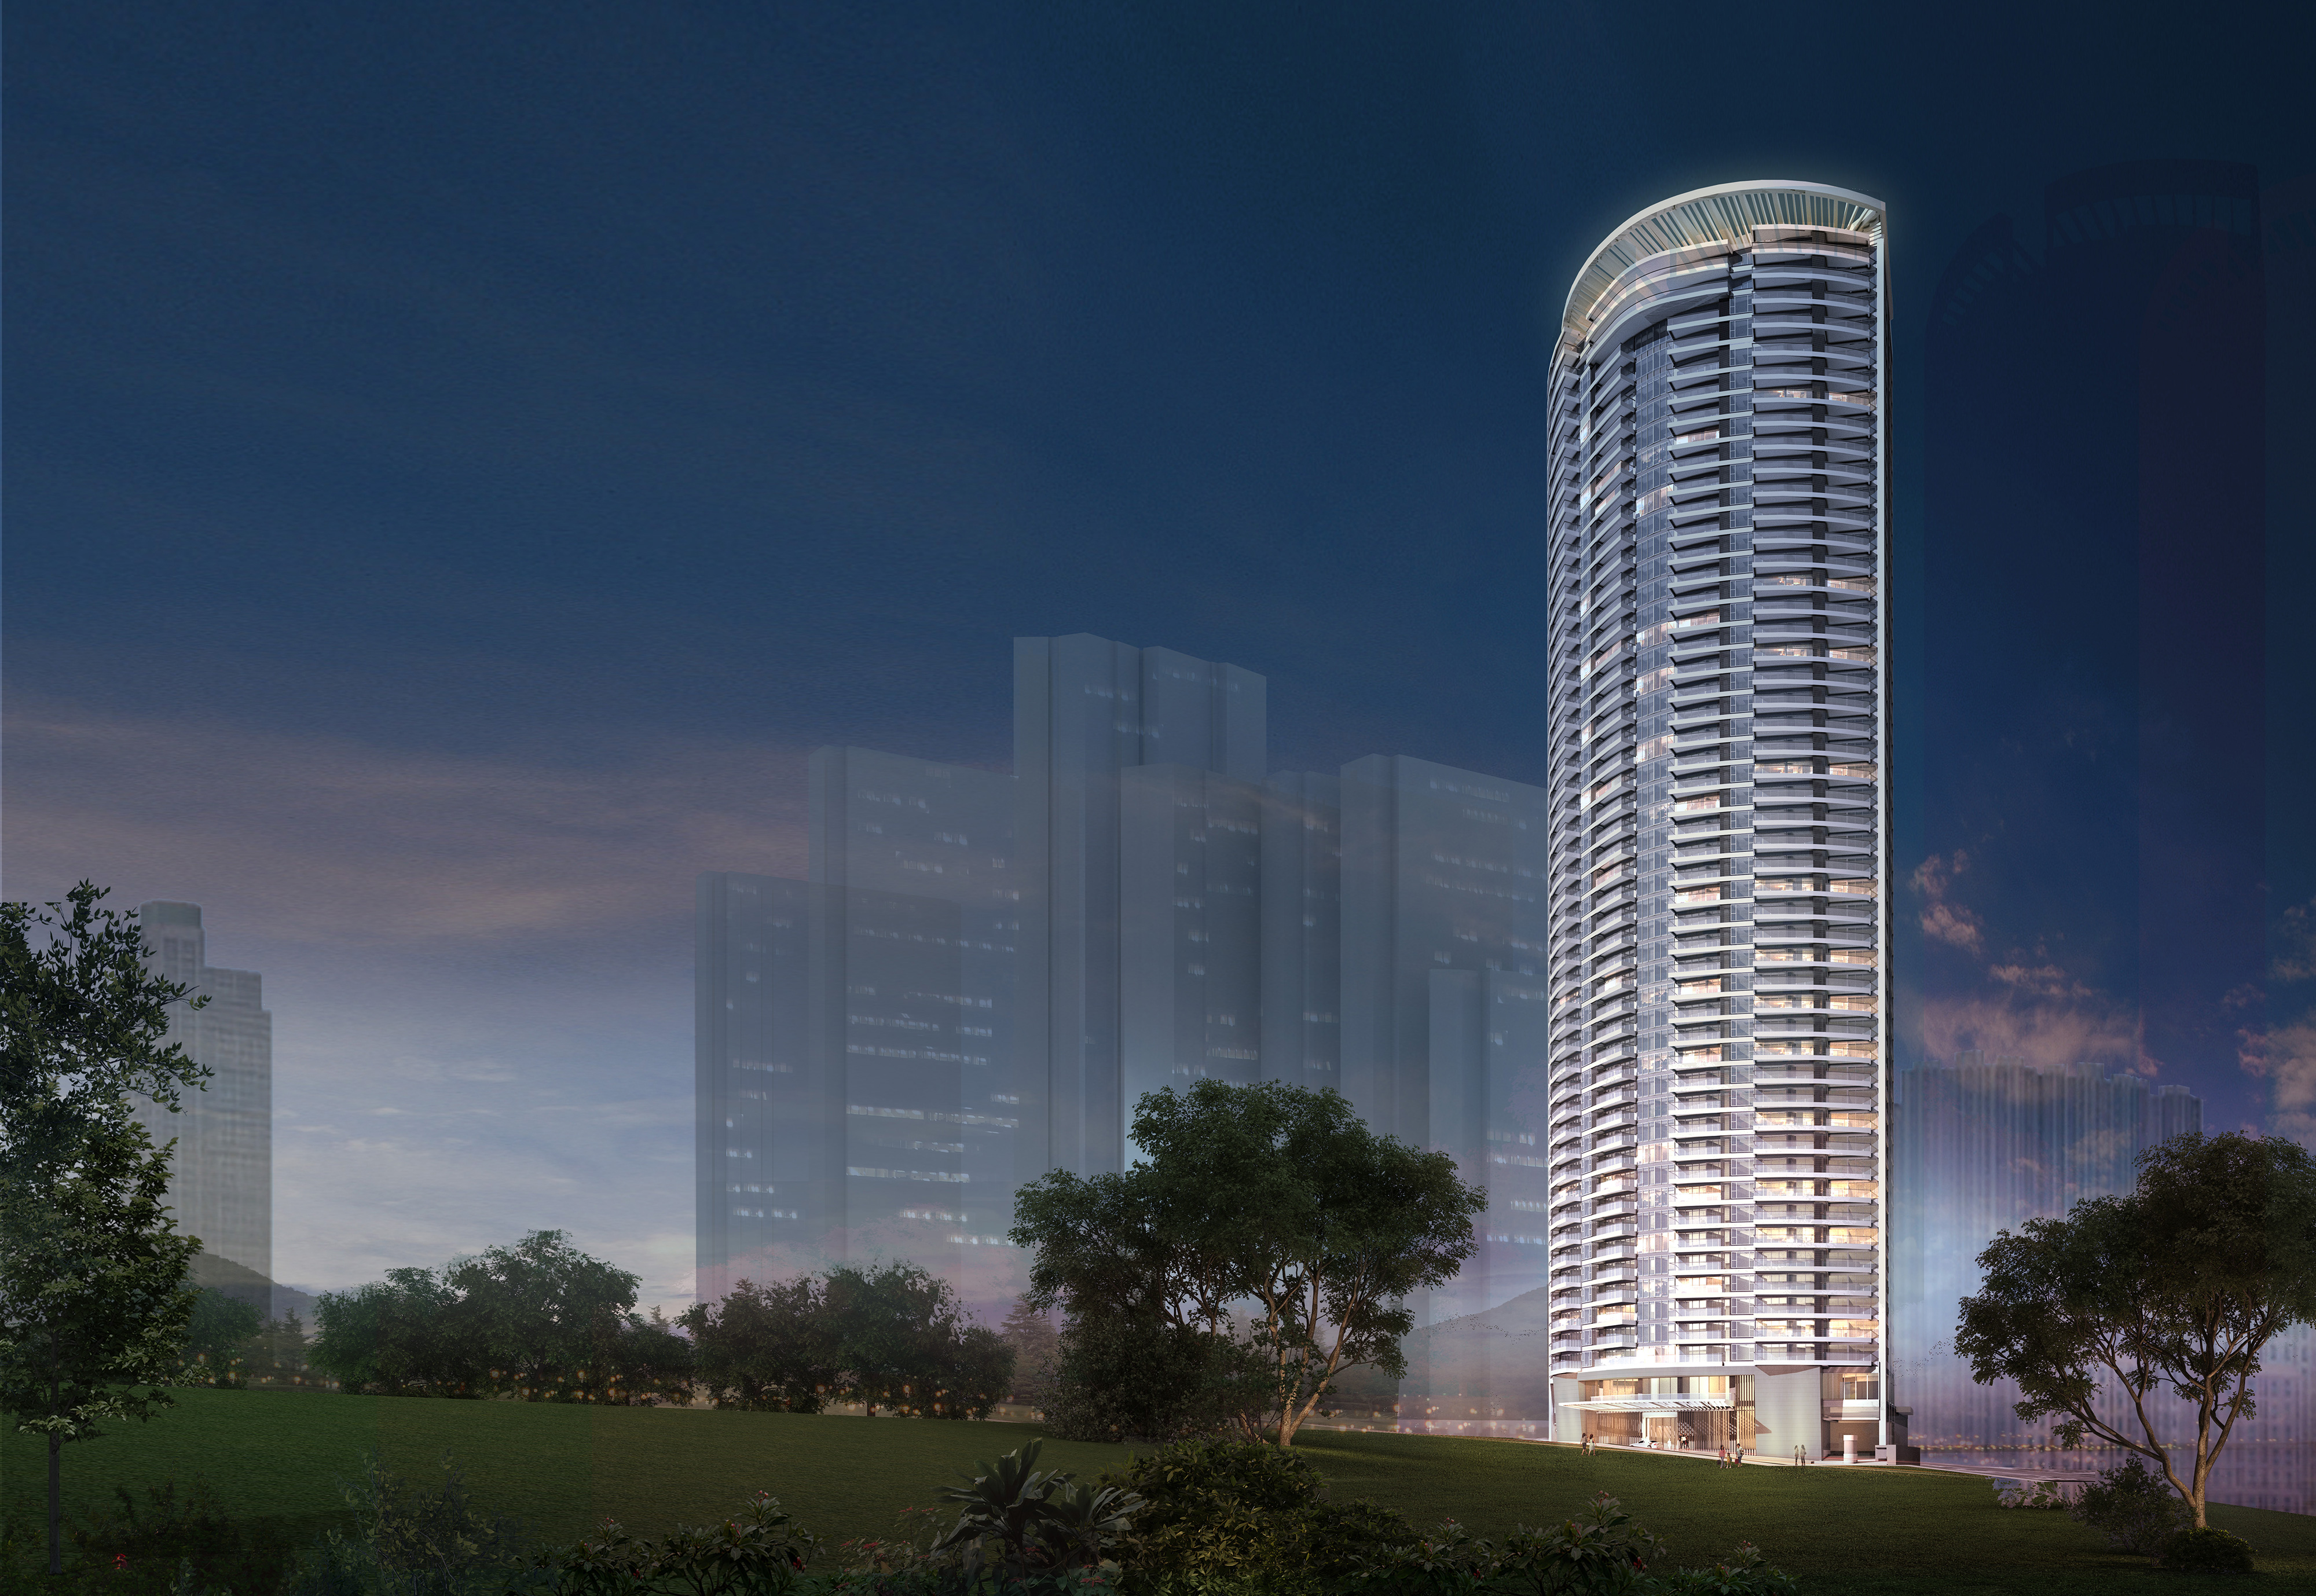 WACK WACK PHILIPPINES - Comprising 430 units, Shang Residences at Wack Wack spans 50 storeys that soar to 165 metres in height